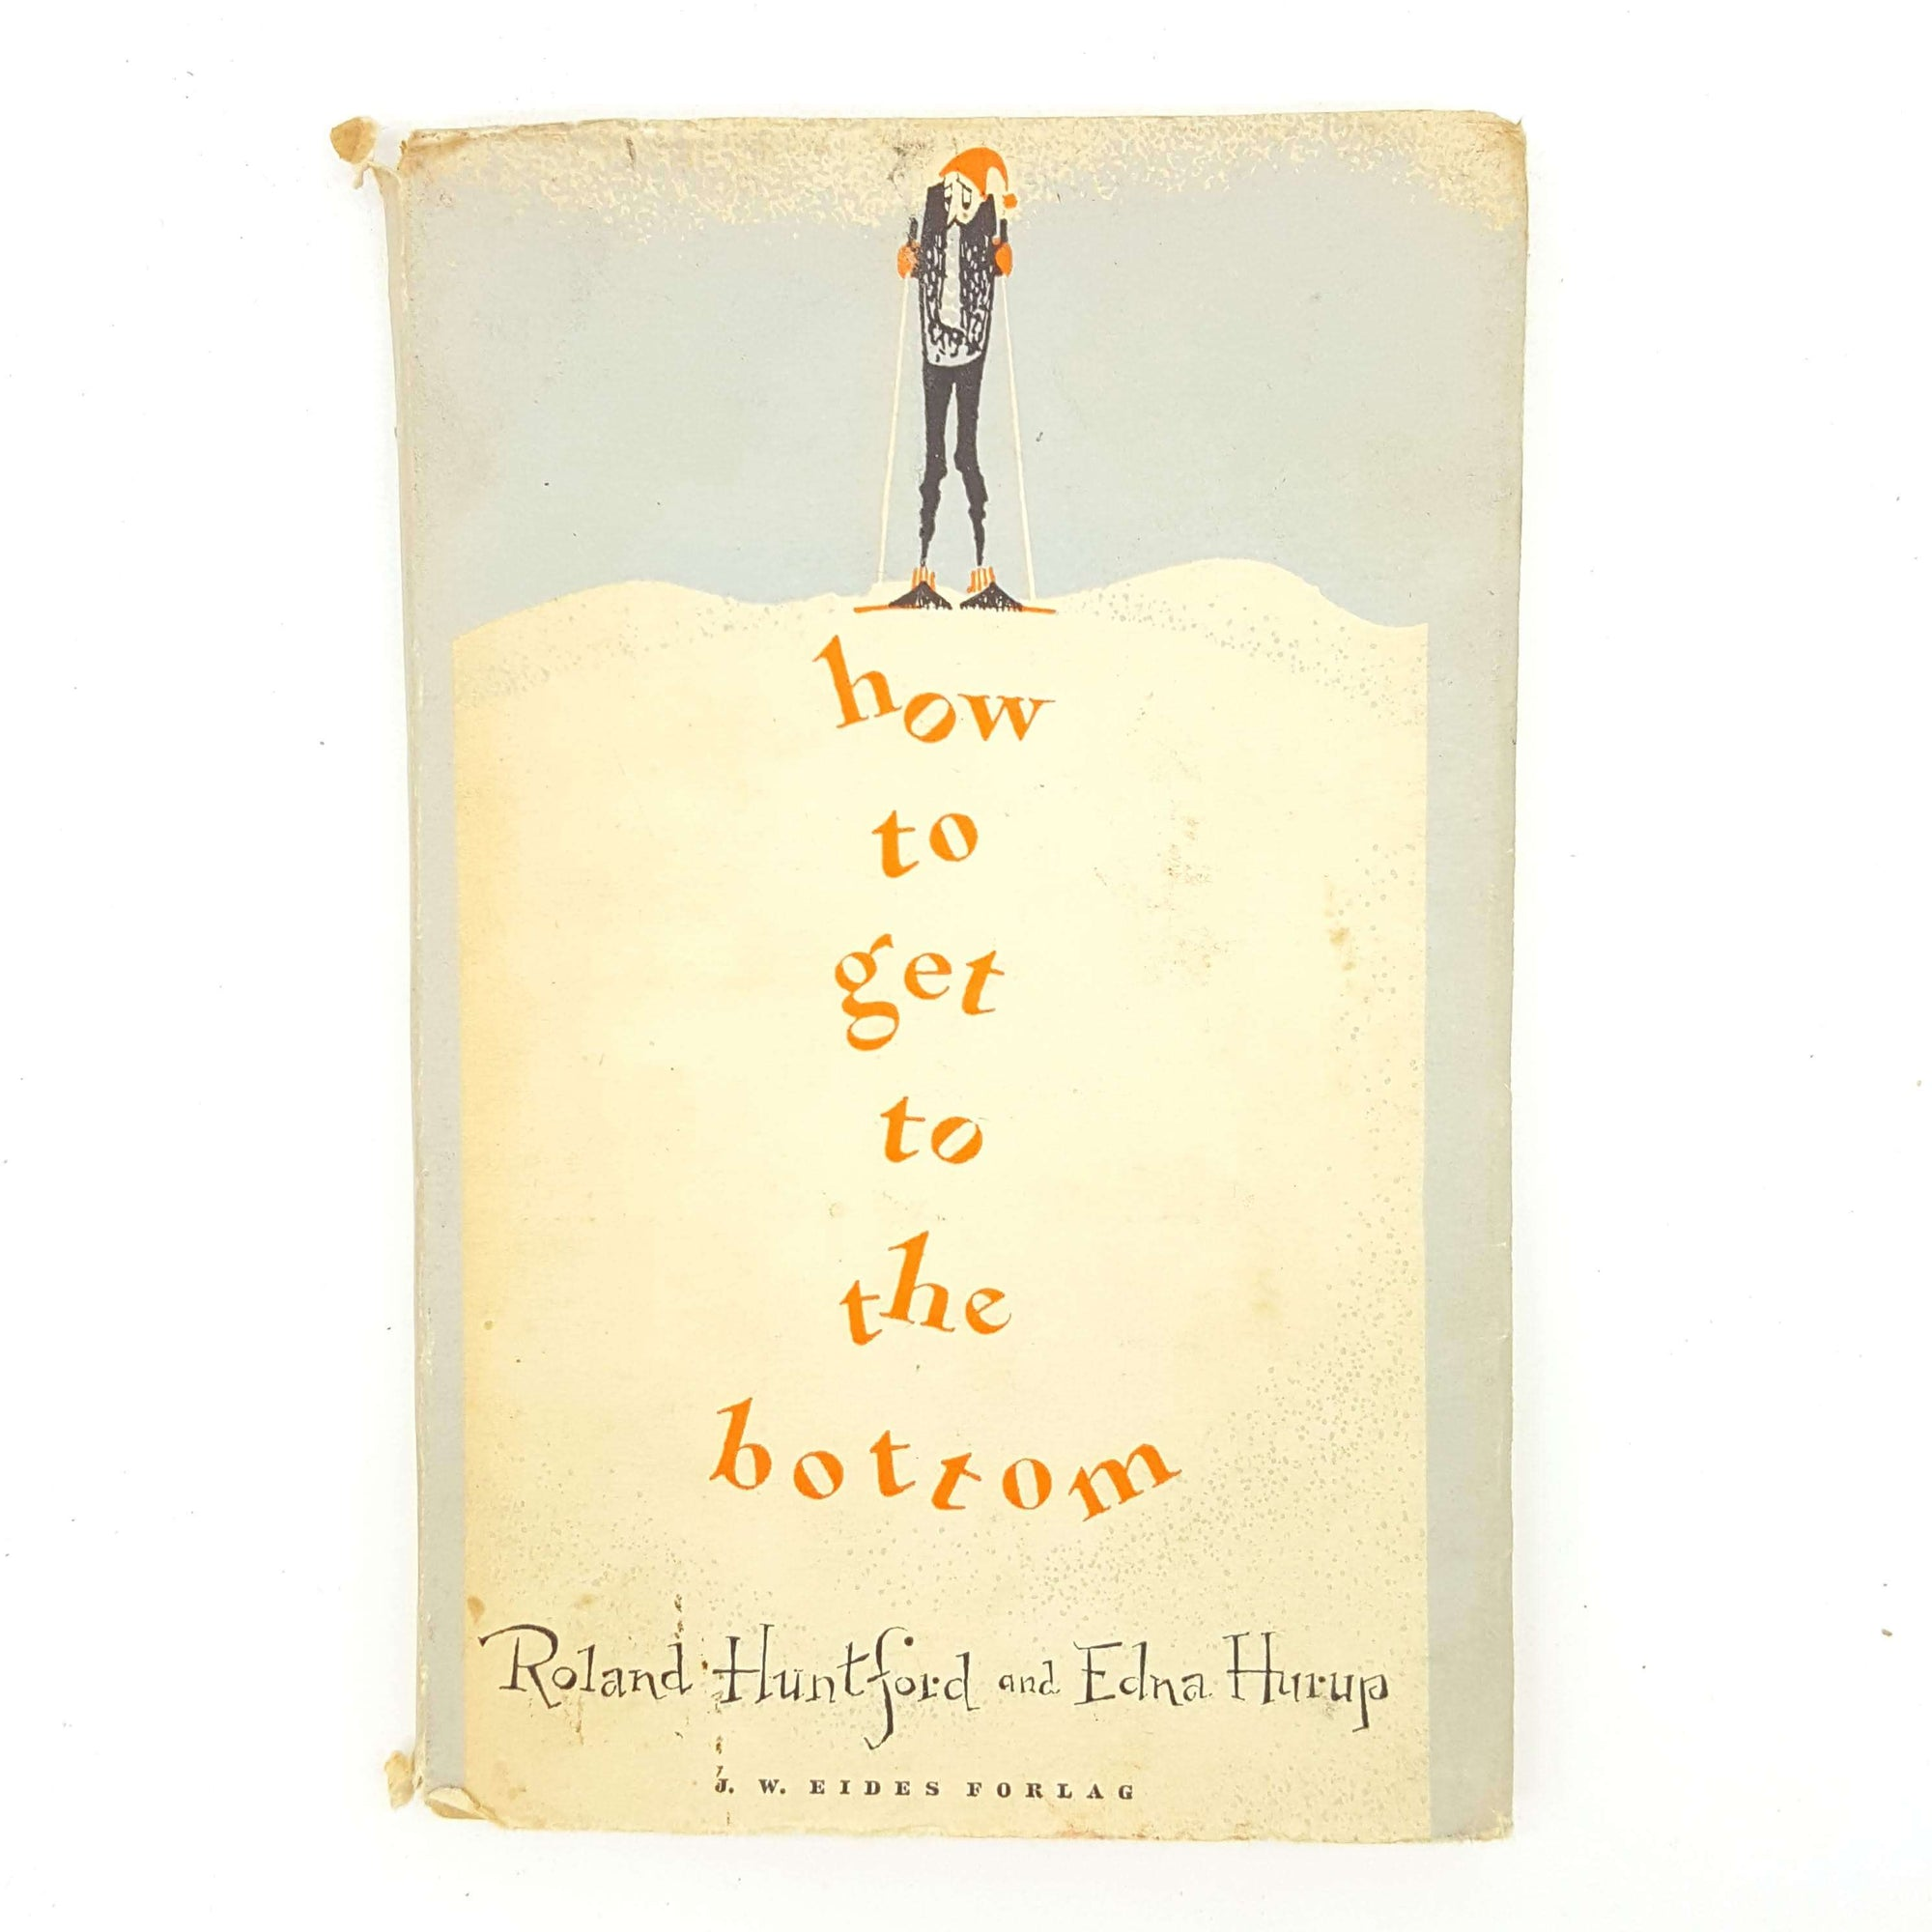 How To Get To The Bottom by Roland Huntford and Edna Hurup 1955 Country House Library